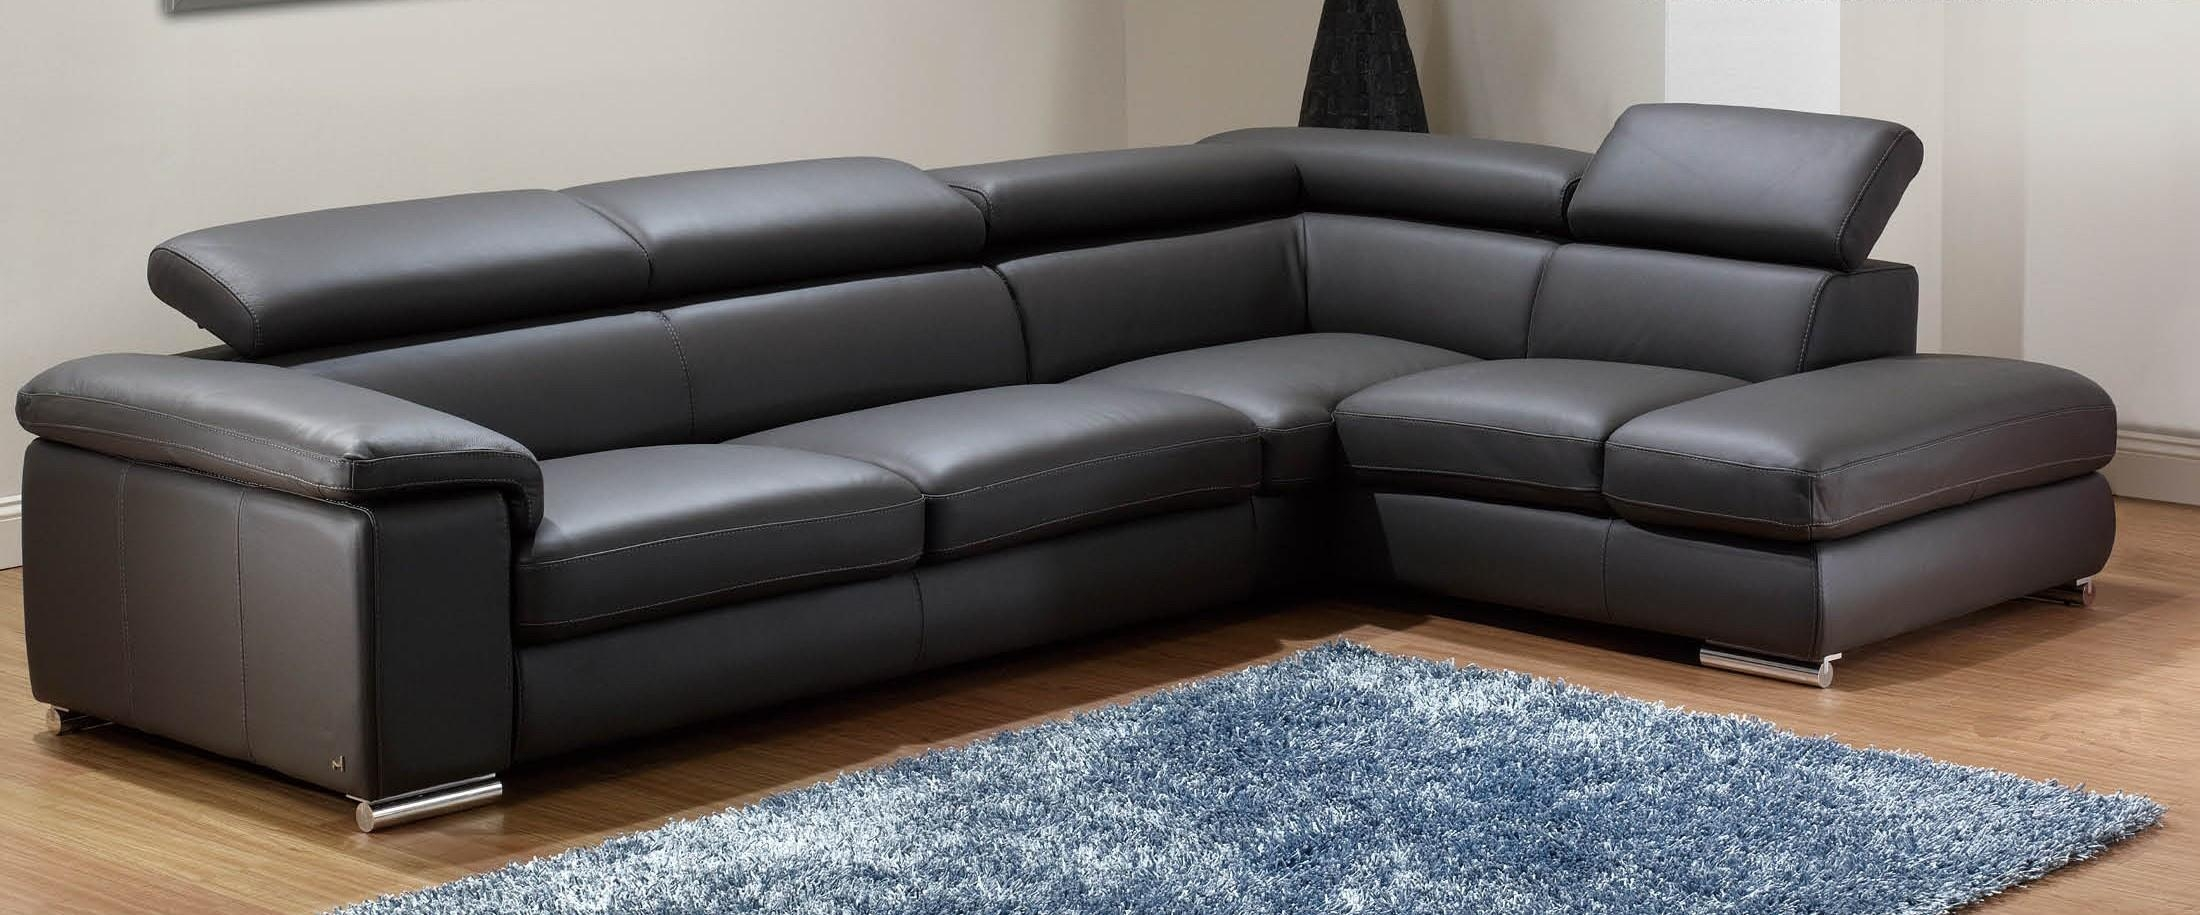 Living Room : Wonderful Sectional Sofa Living Room Ideas With With Leather Lounge Sofas (View 12 of 20)